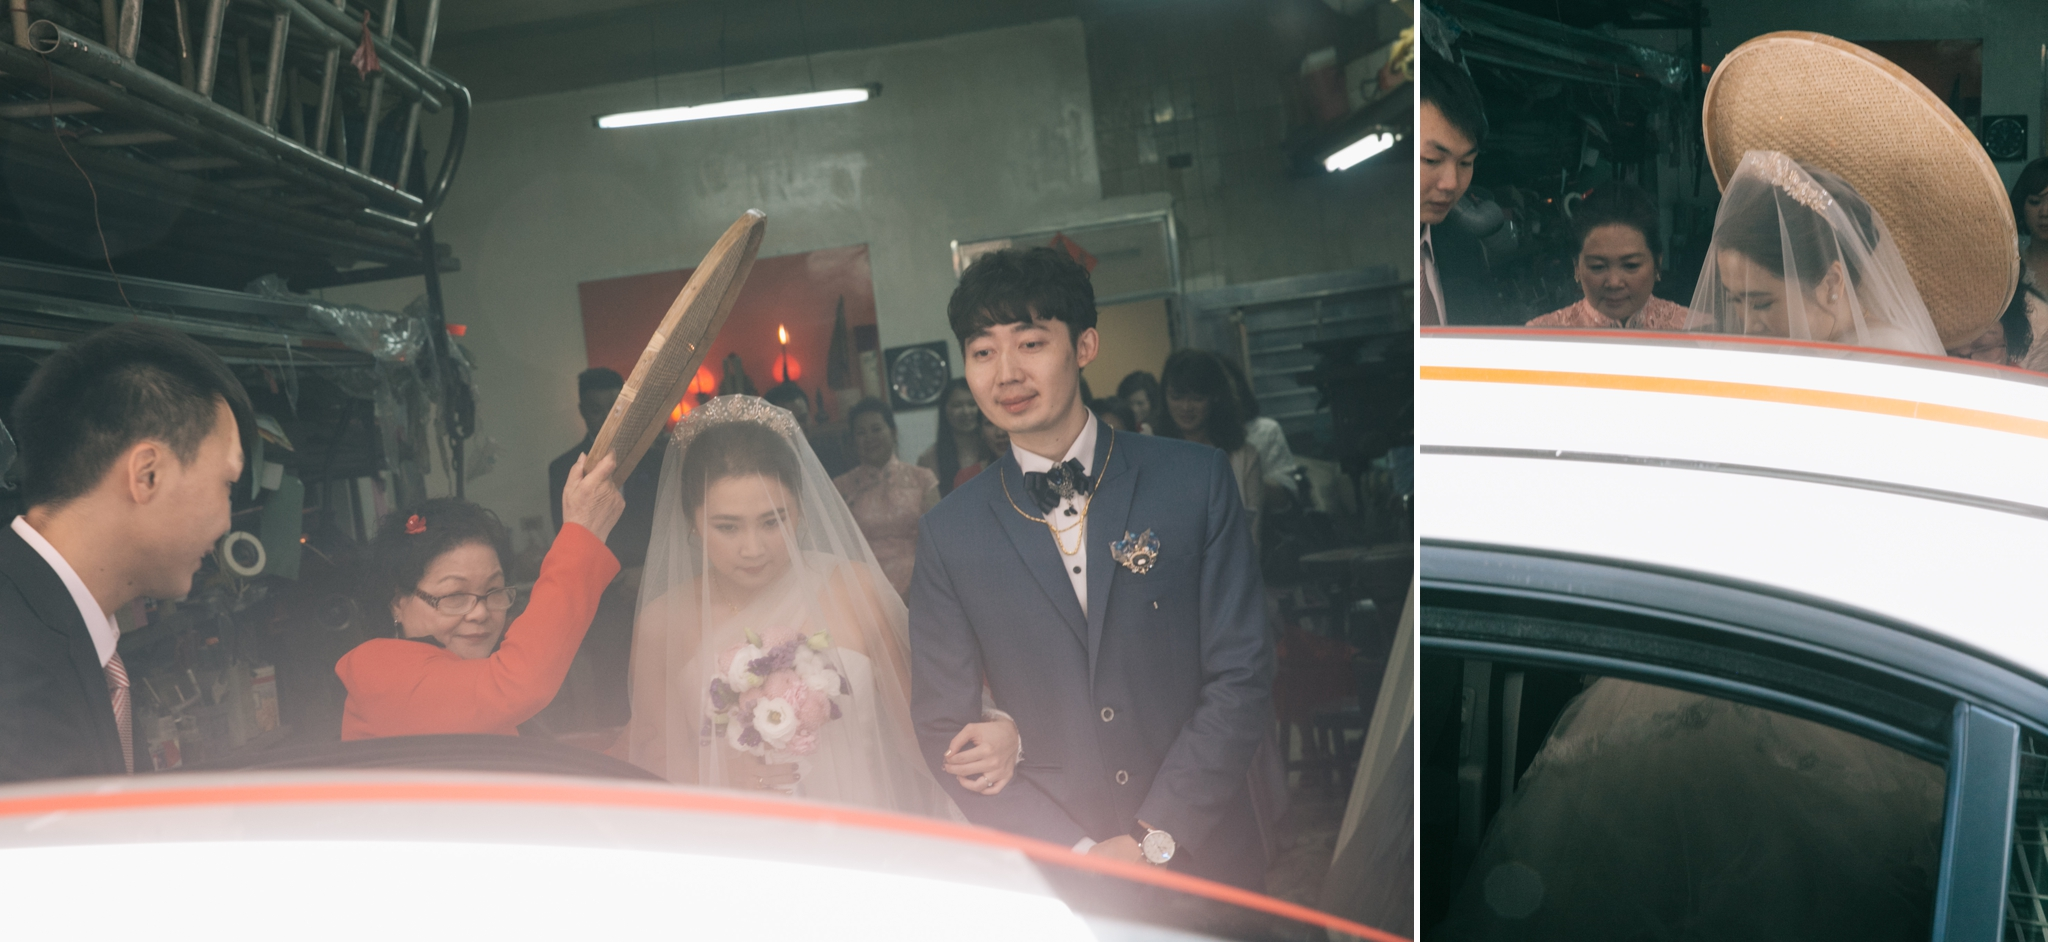 Keddy+Richard-wedding-新莊頤品飯店-112.jpg